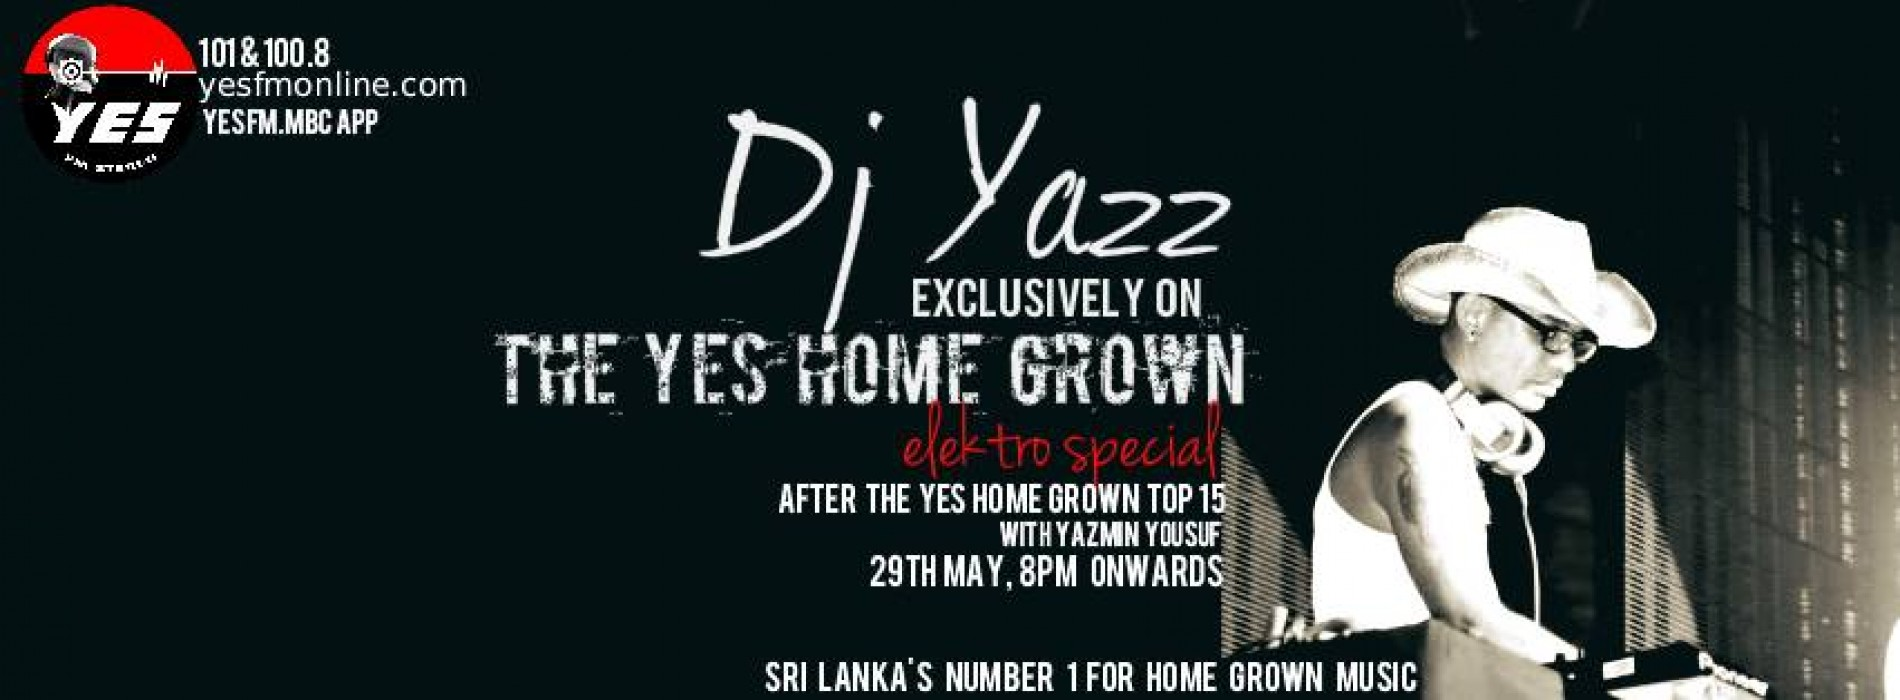 DJ Yazz On The YES Home Grown Elektro Special